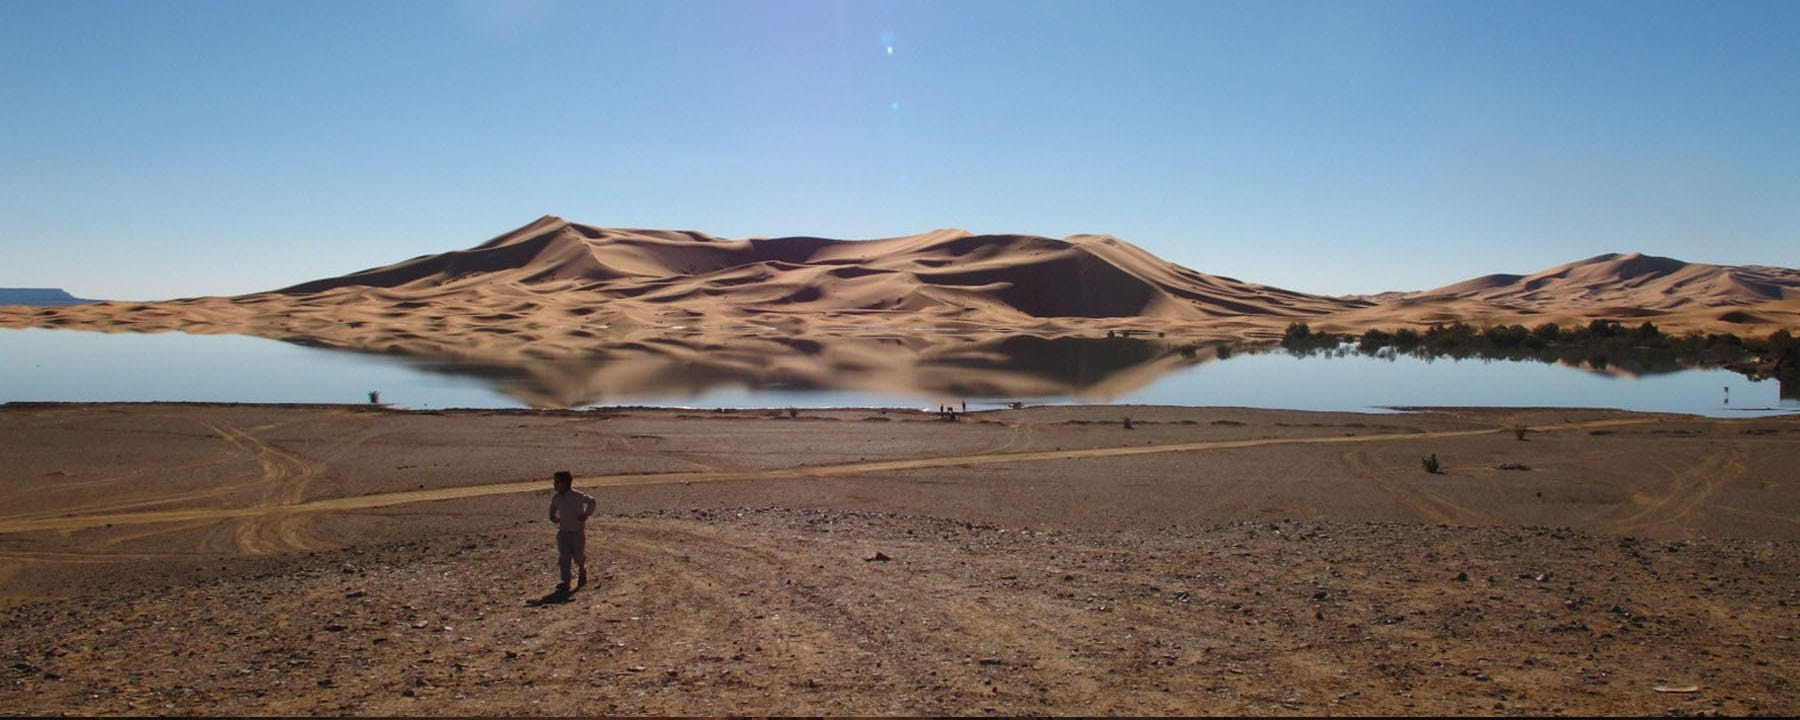 Erg Chebbi lake Sahara Desert Morocco_Source NOSADE